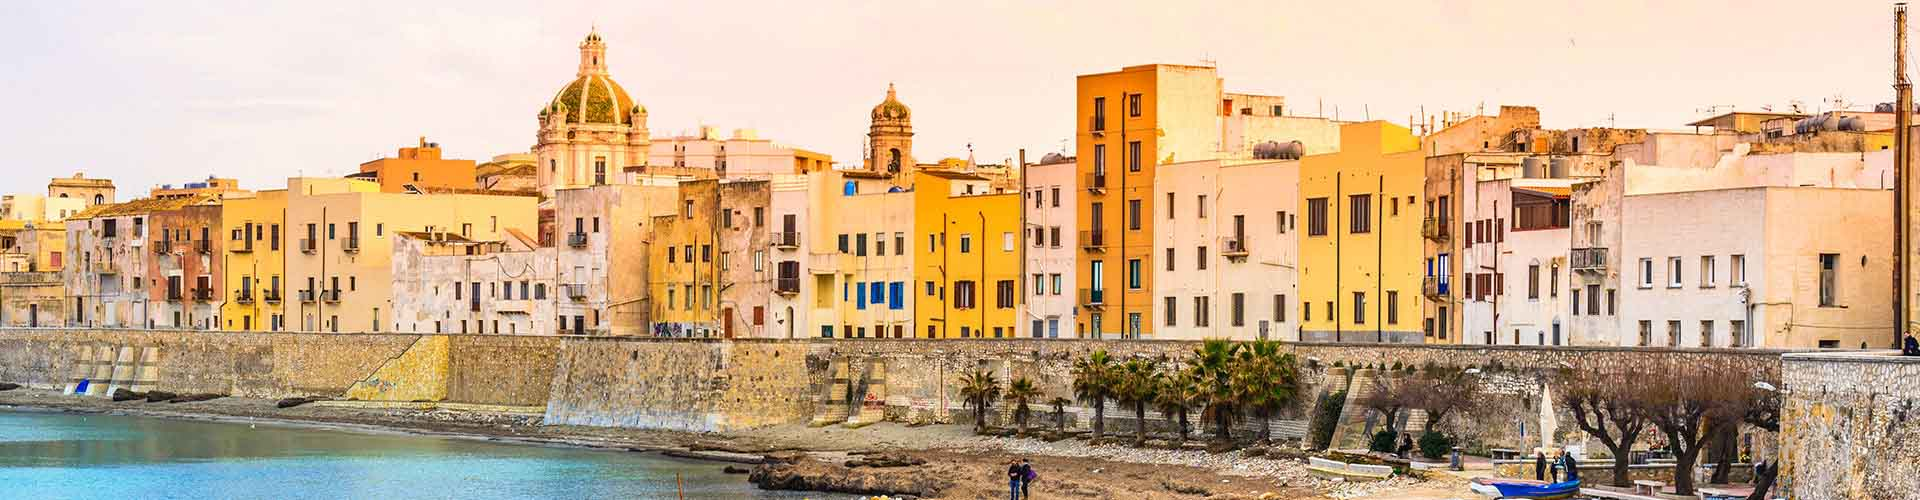 Trapani – Hostels in Trapani. Maps for Trapani, Photos and Reviews for each hostel in Trapani.